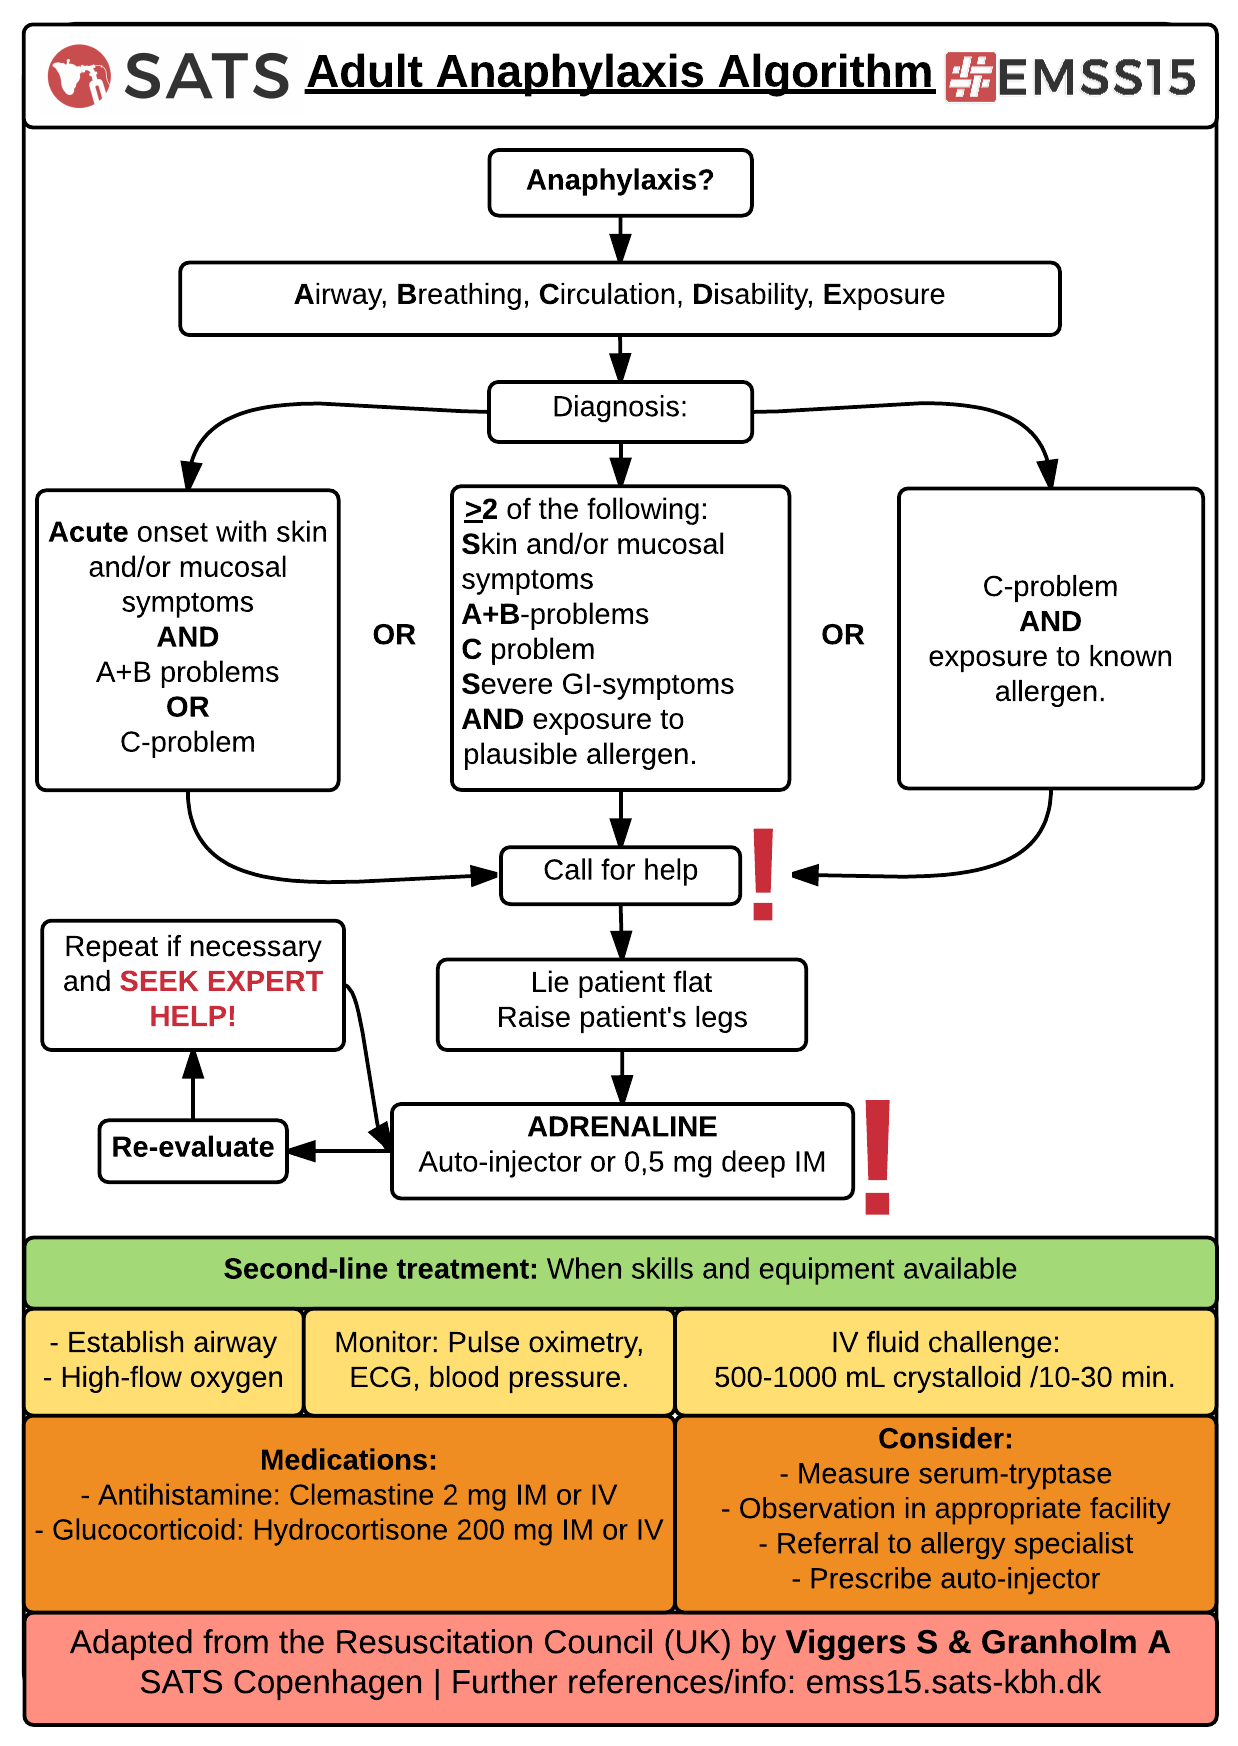 SATS - EMSS15 - Adult Anaphylaxis Algorithm